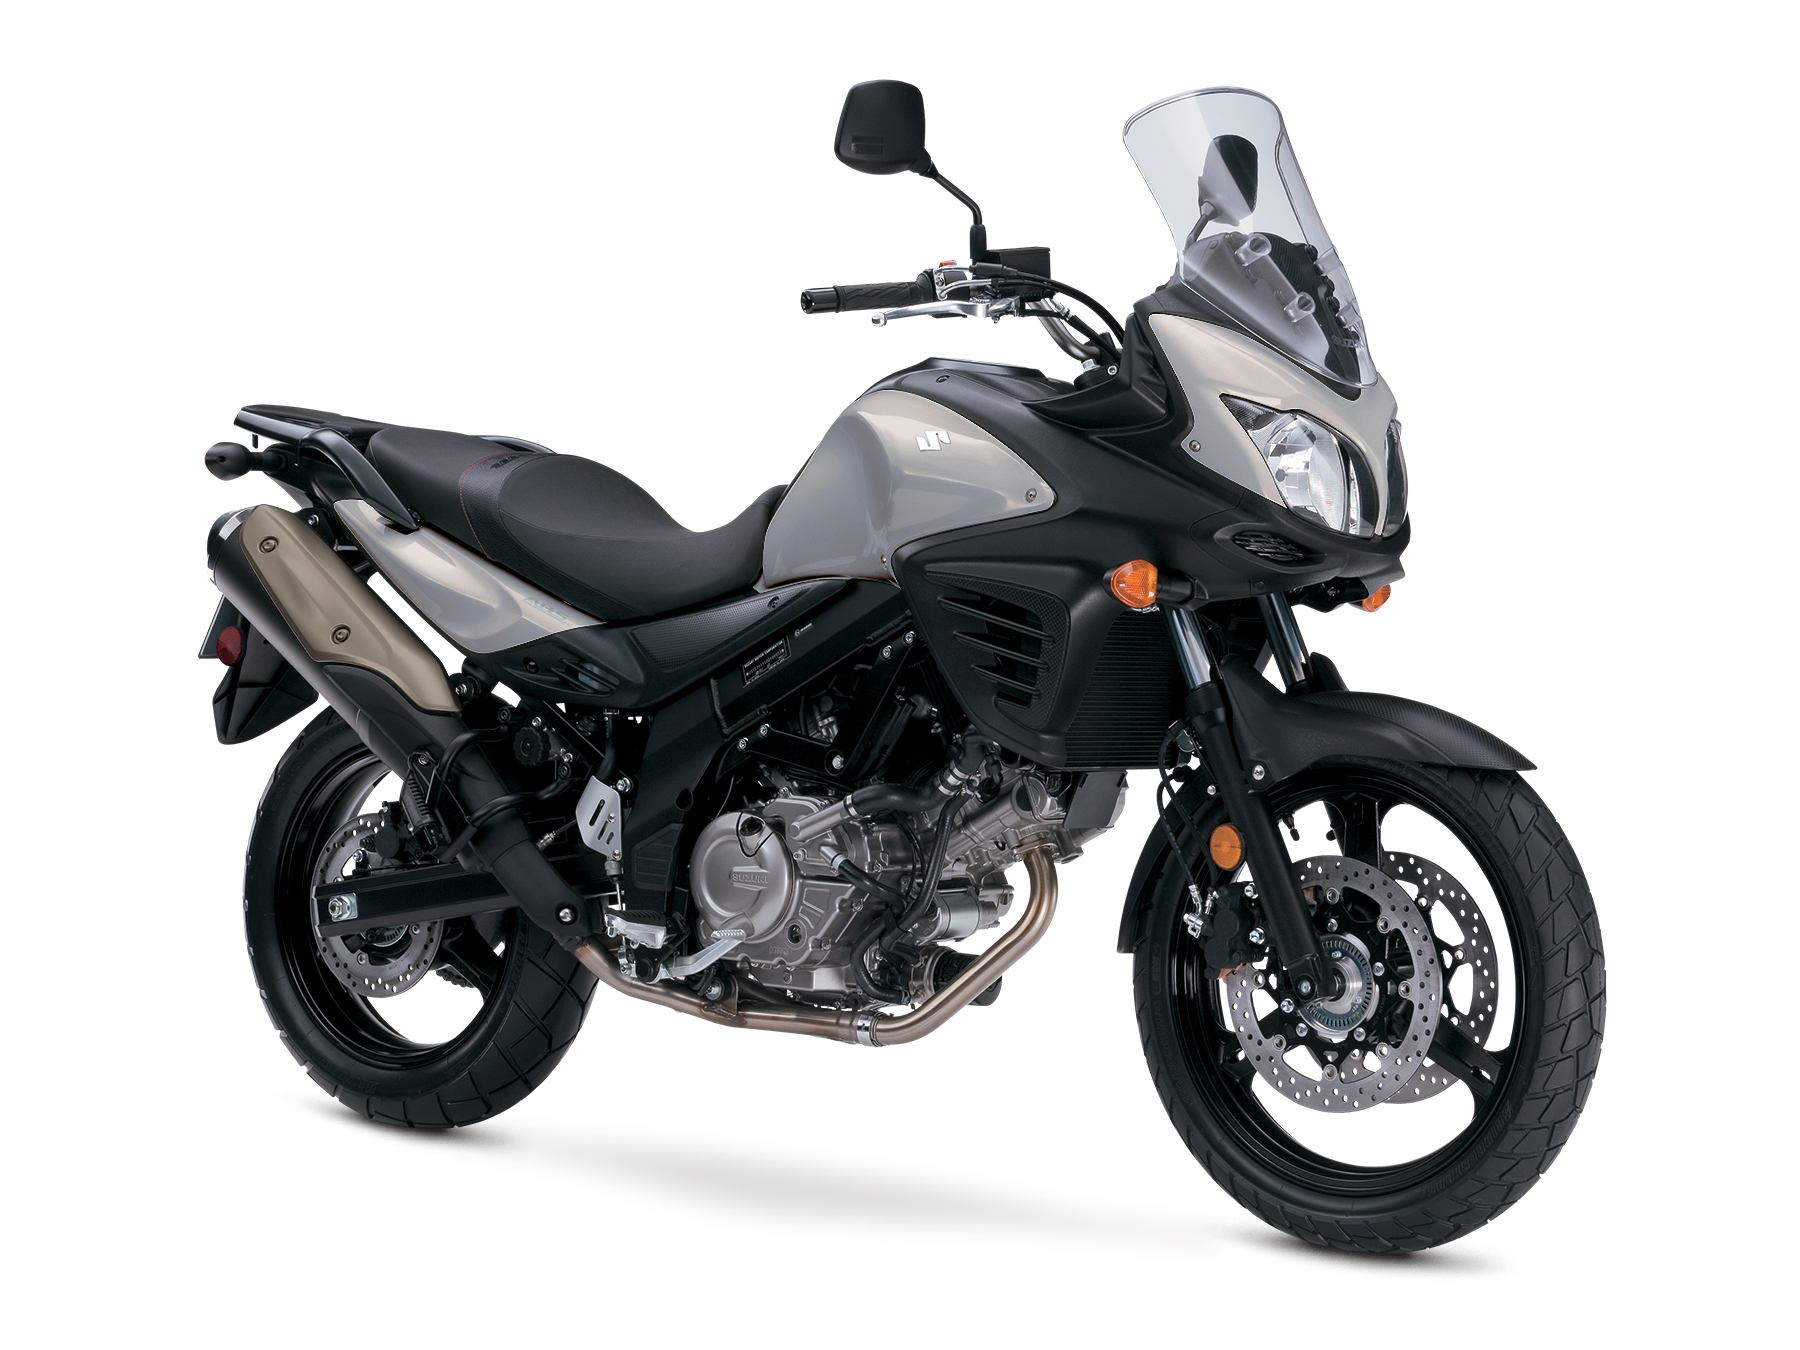 2016 Suzuki V-Strom 650 ABS in Mechanicsburg, Pennsylvania